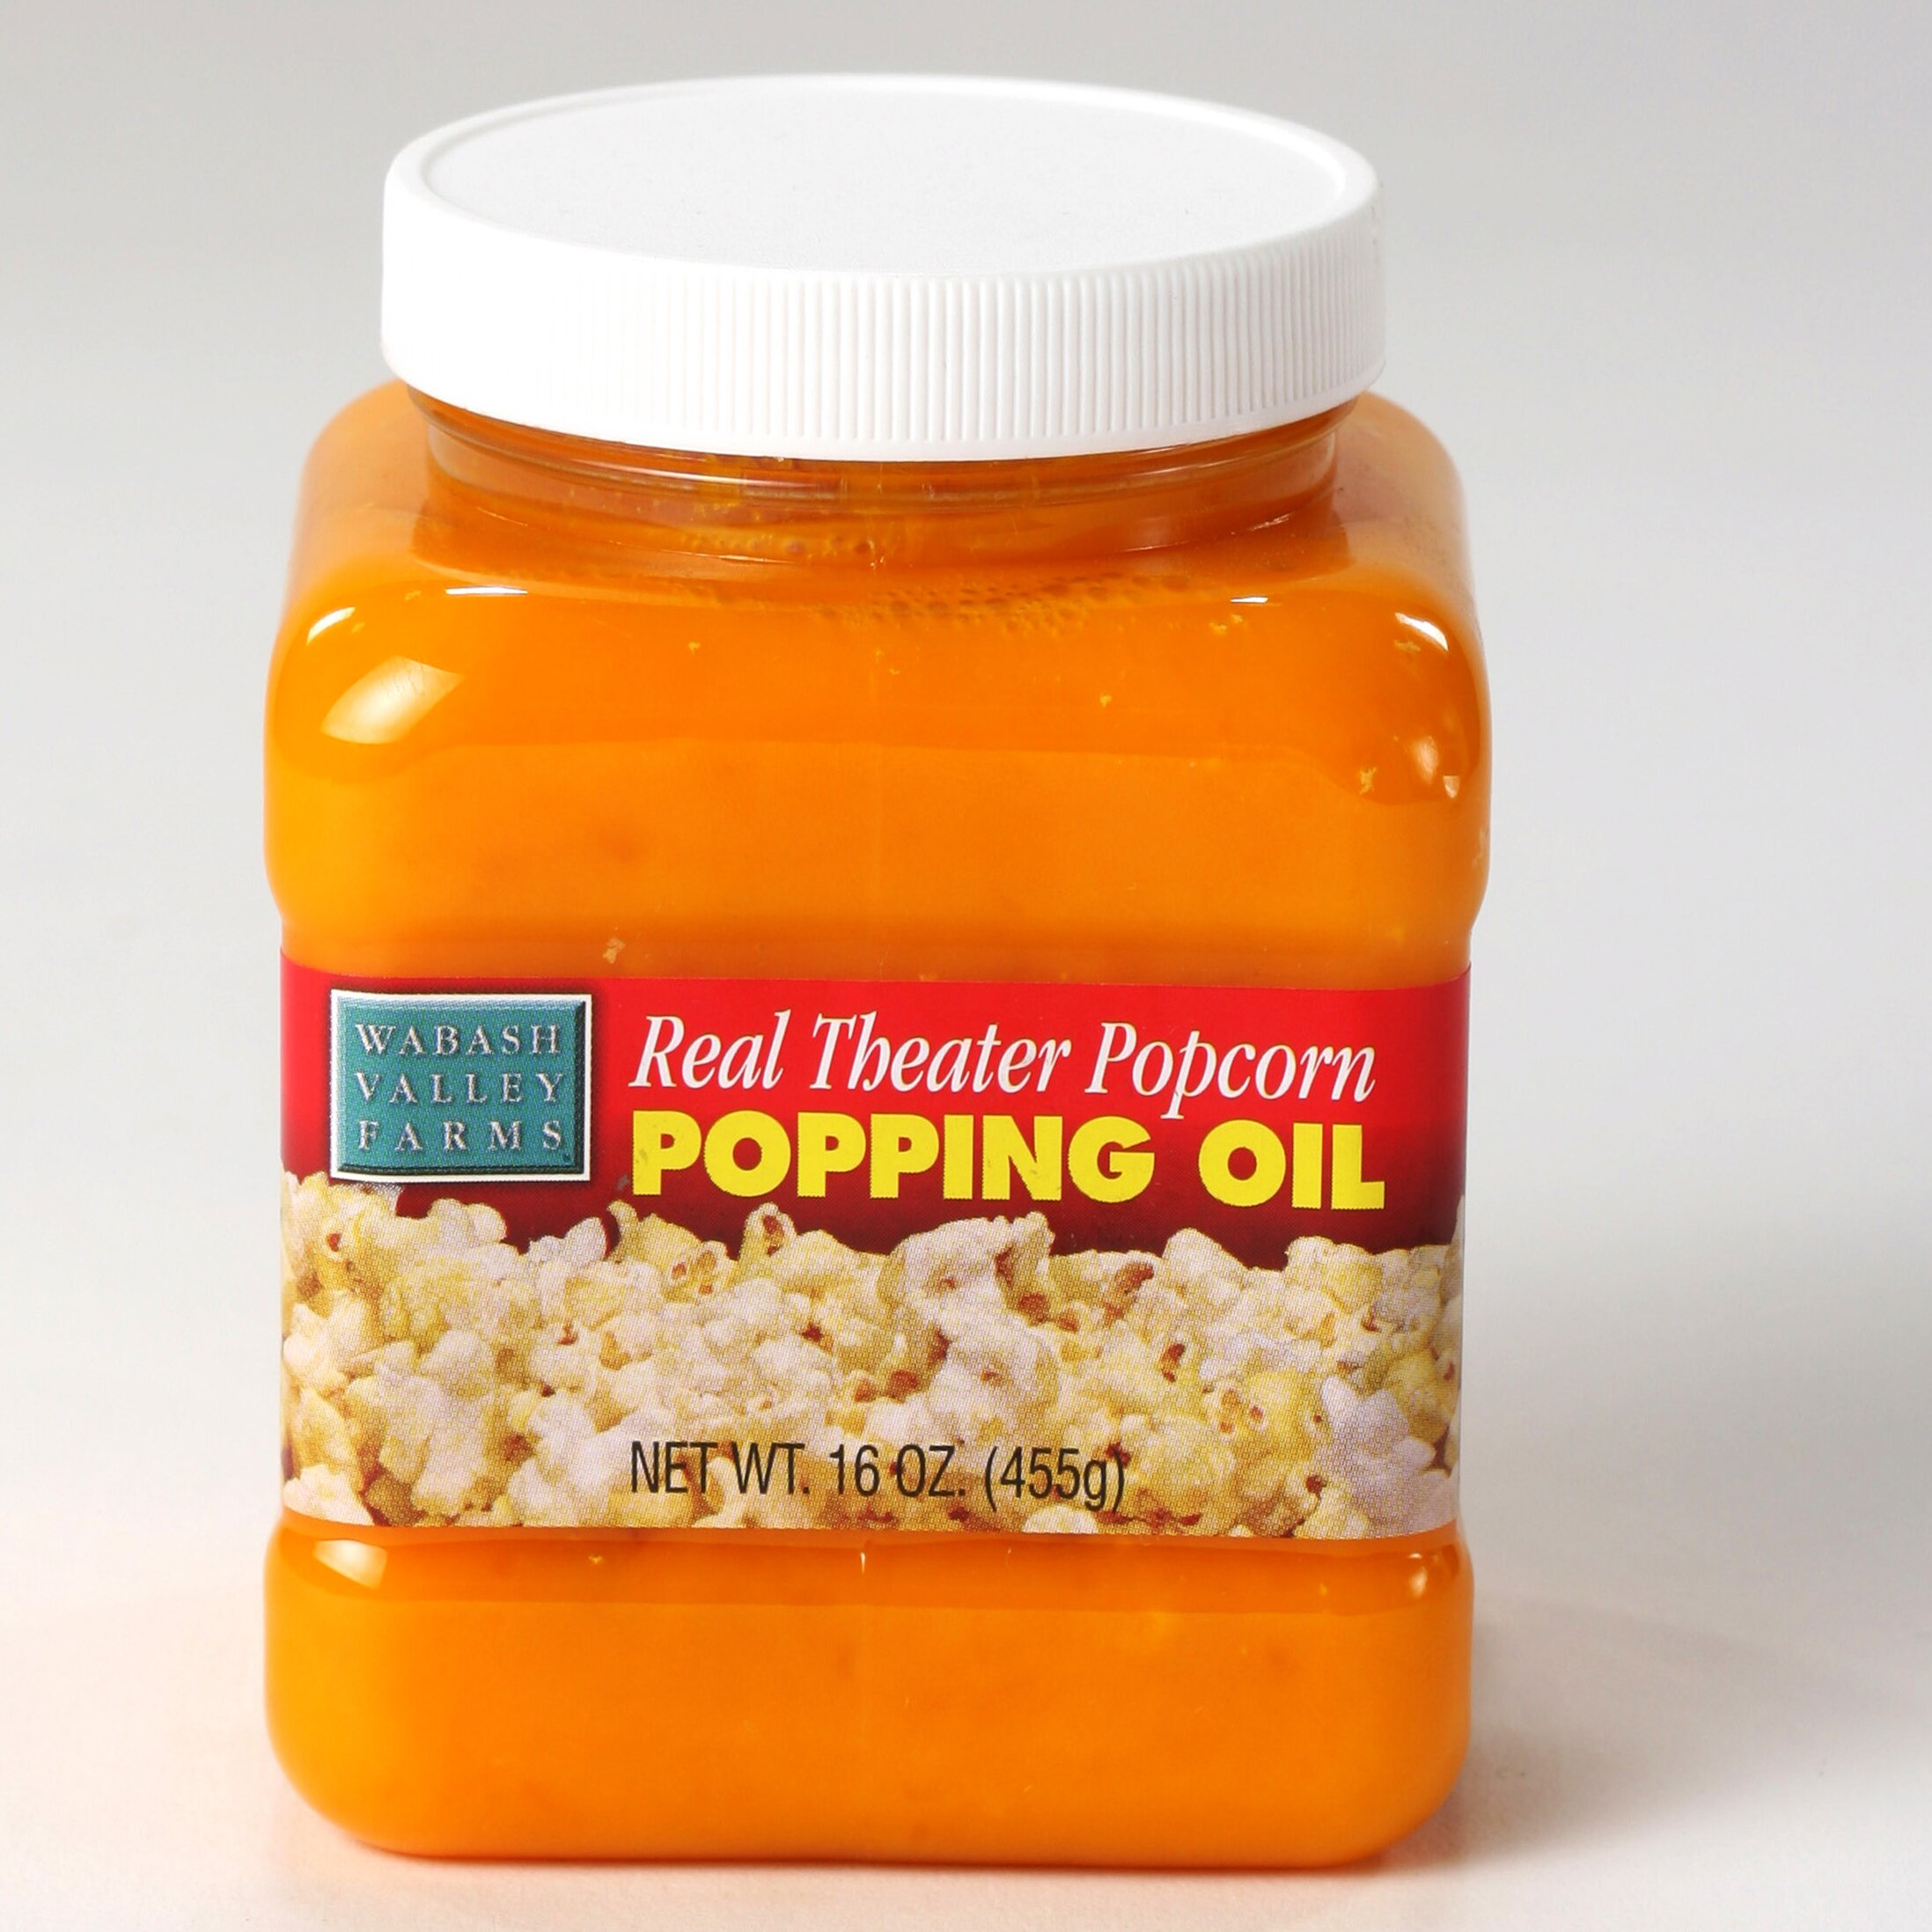 Wabash Valley Farms Real Theater Popcorn Popping Oil  : Wabash Valley Farms Real Theater Popcorn Popping Oil from www.wayfair.com size 2195 x 2195 jpeg 730kB